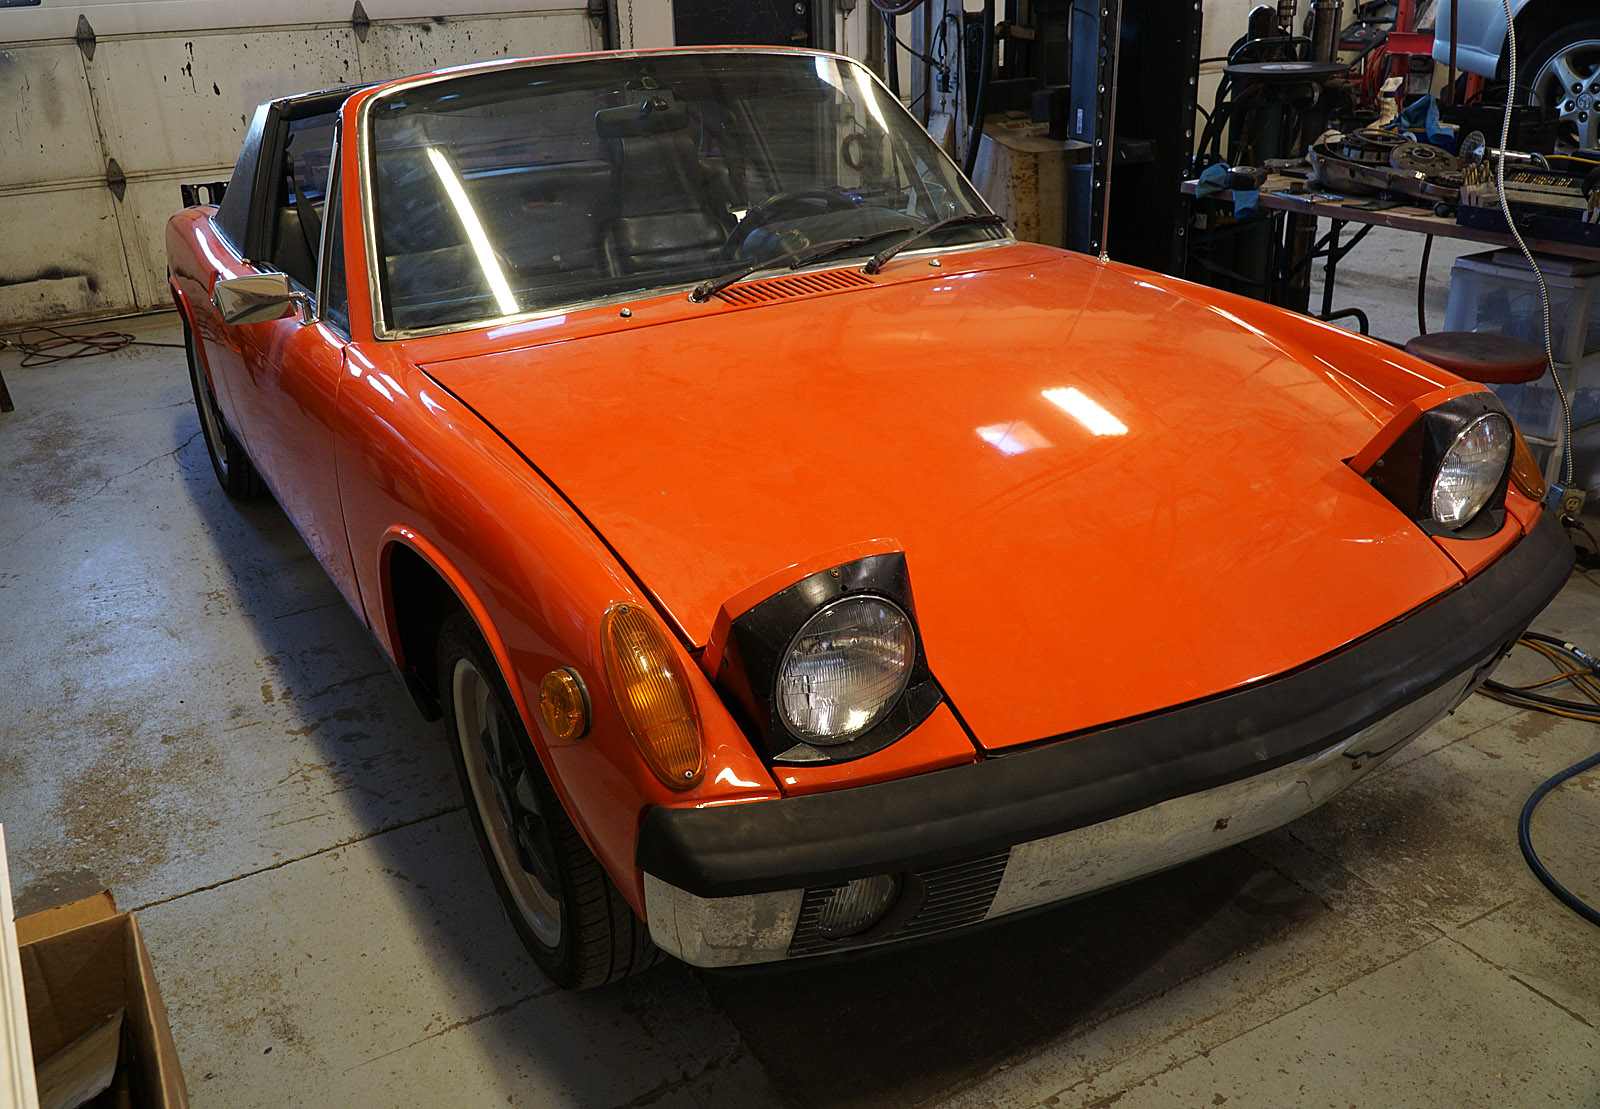 Porsche 914 Tachometer Wiring together with Silverado 4 3 Engine Diagram additionally Truck gauges as well Chevrolet Truck Trailer Wiring Harness as well Farmall A Wiring Diagram. on tail light wiring diagram for 914 porsche